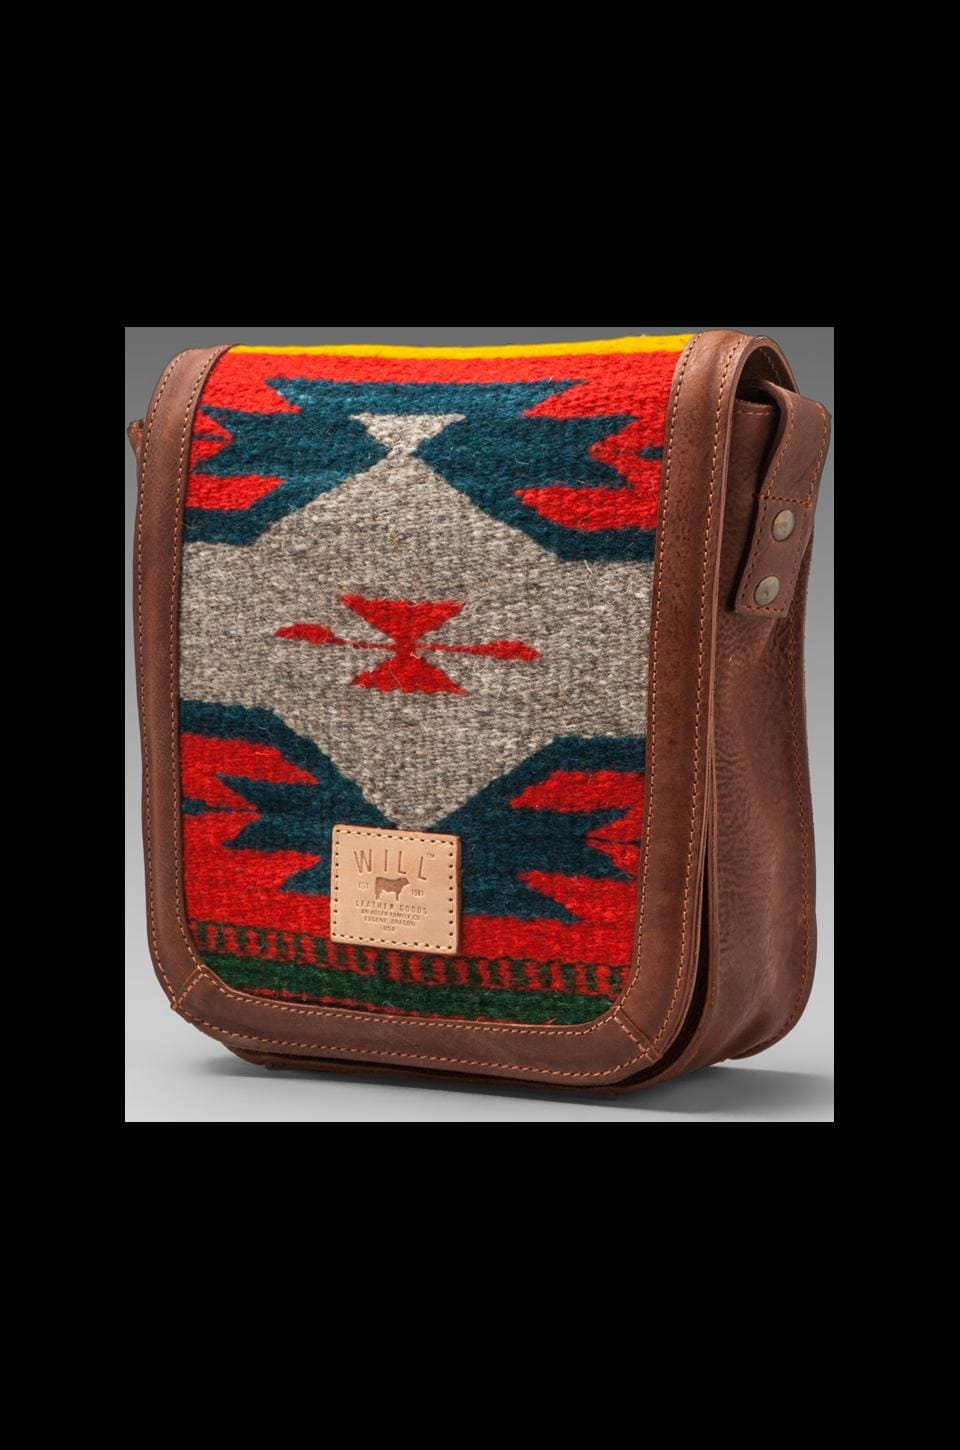 WILL Leather Goods Oaxacan Small Crossbody in Cognac